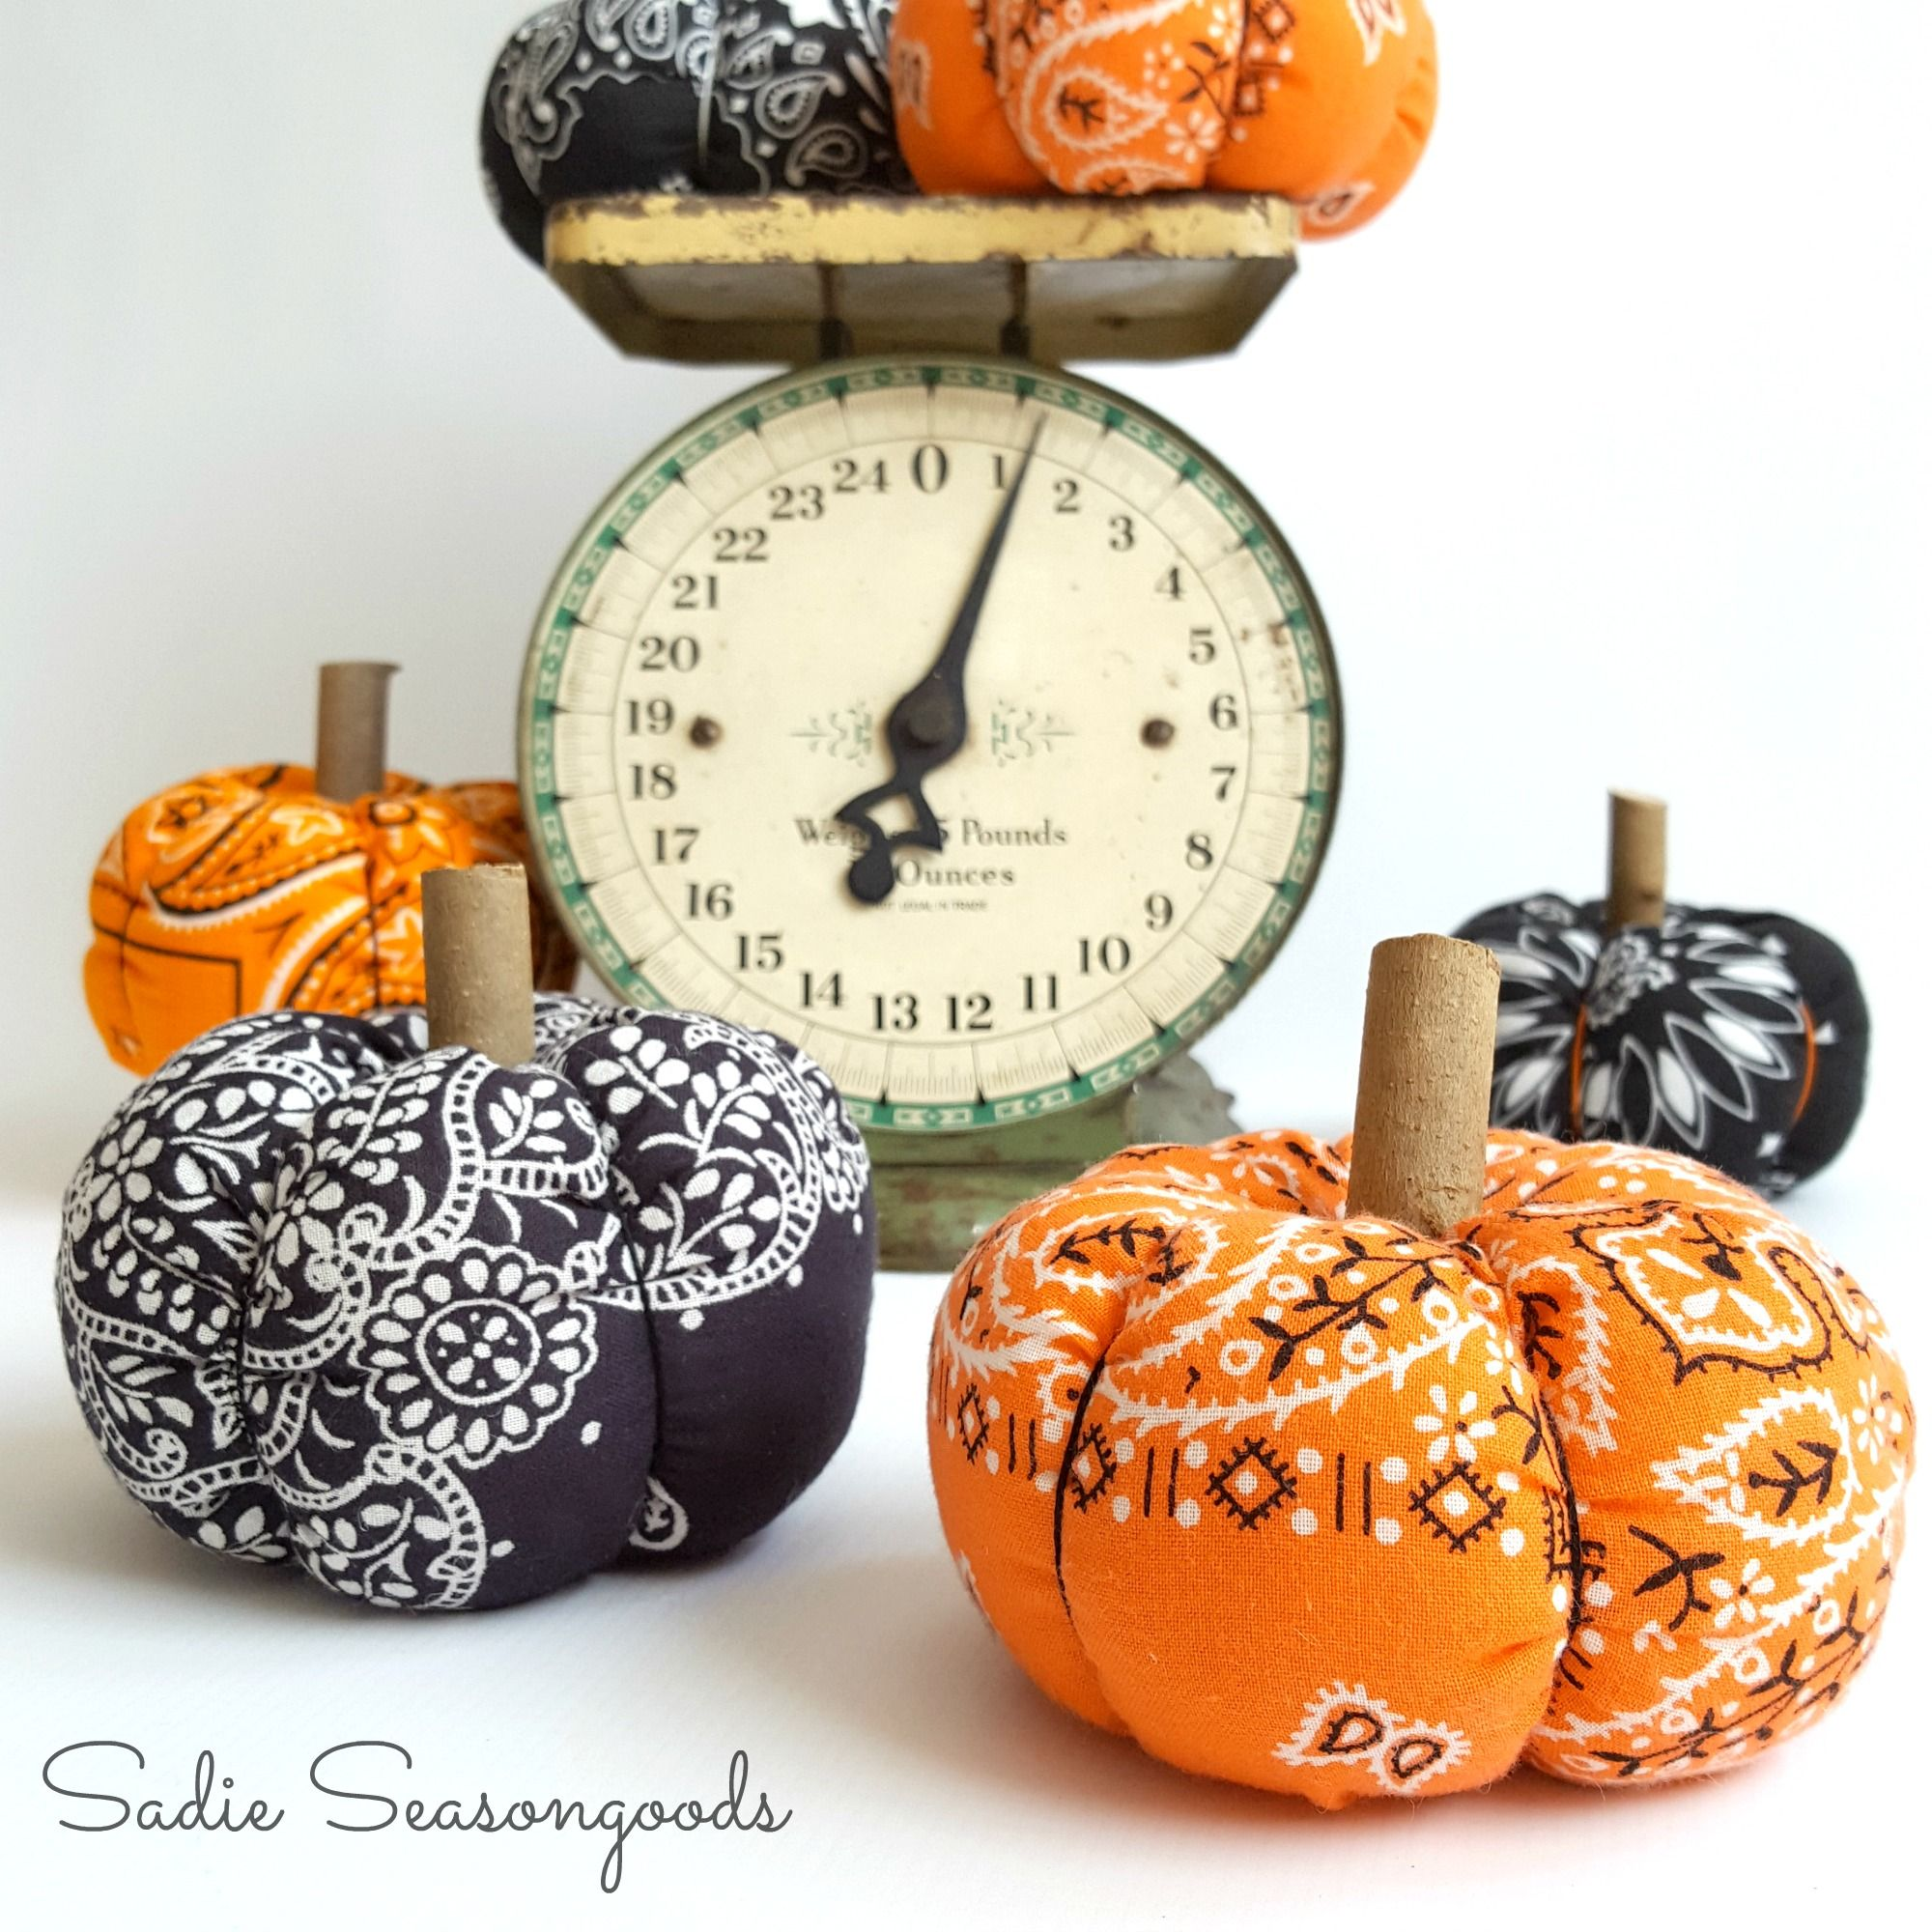 58 Easy Fall Craft Ideas for Adults - DIY Craft Projects for Fall